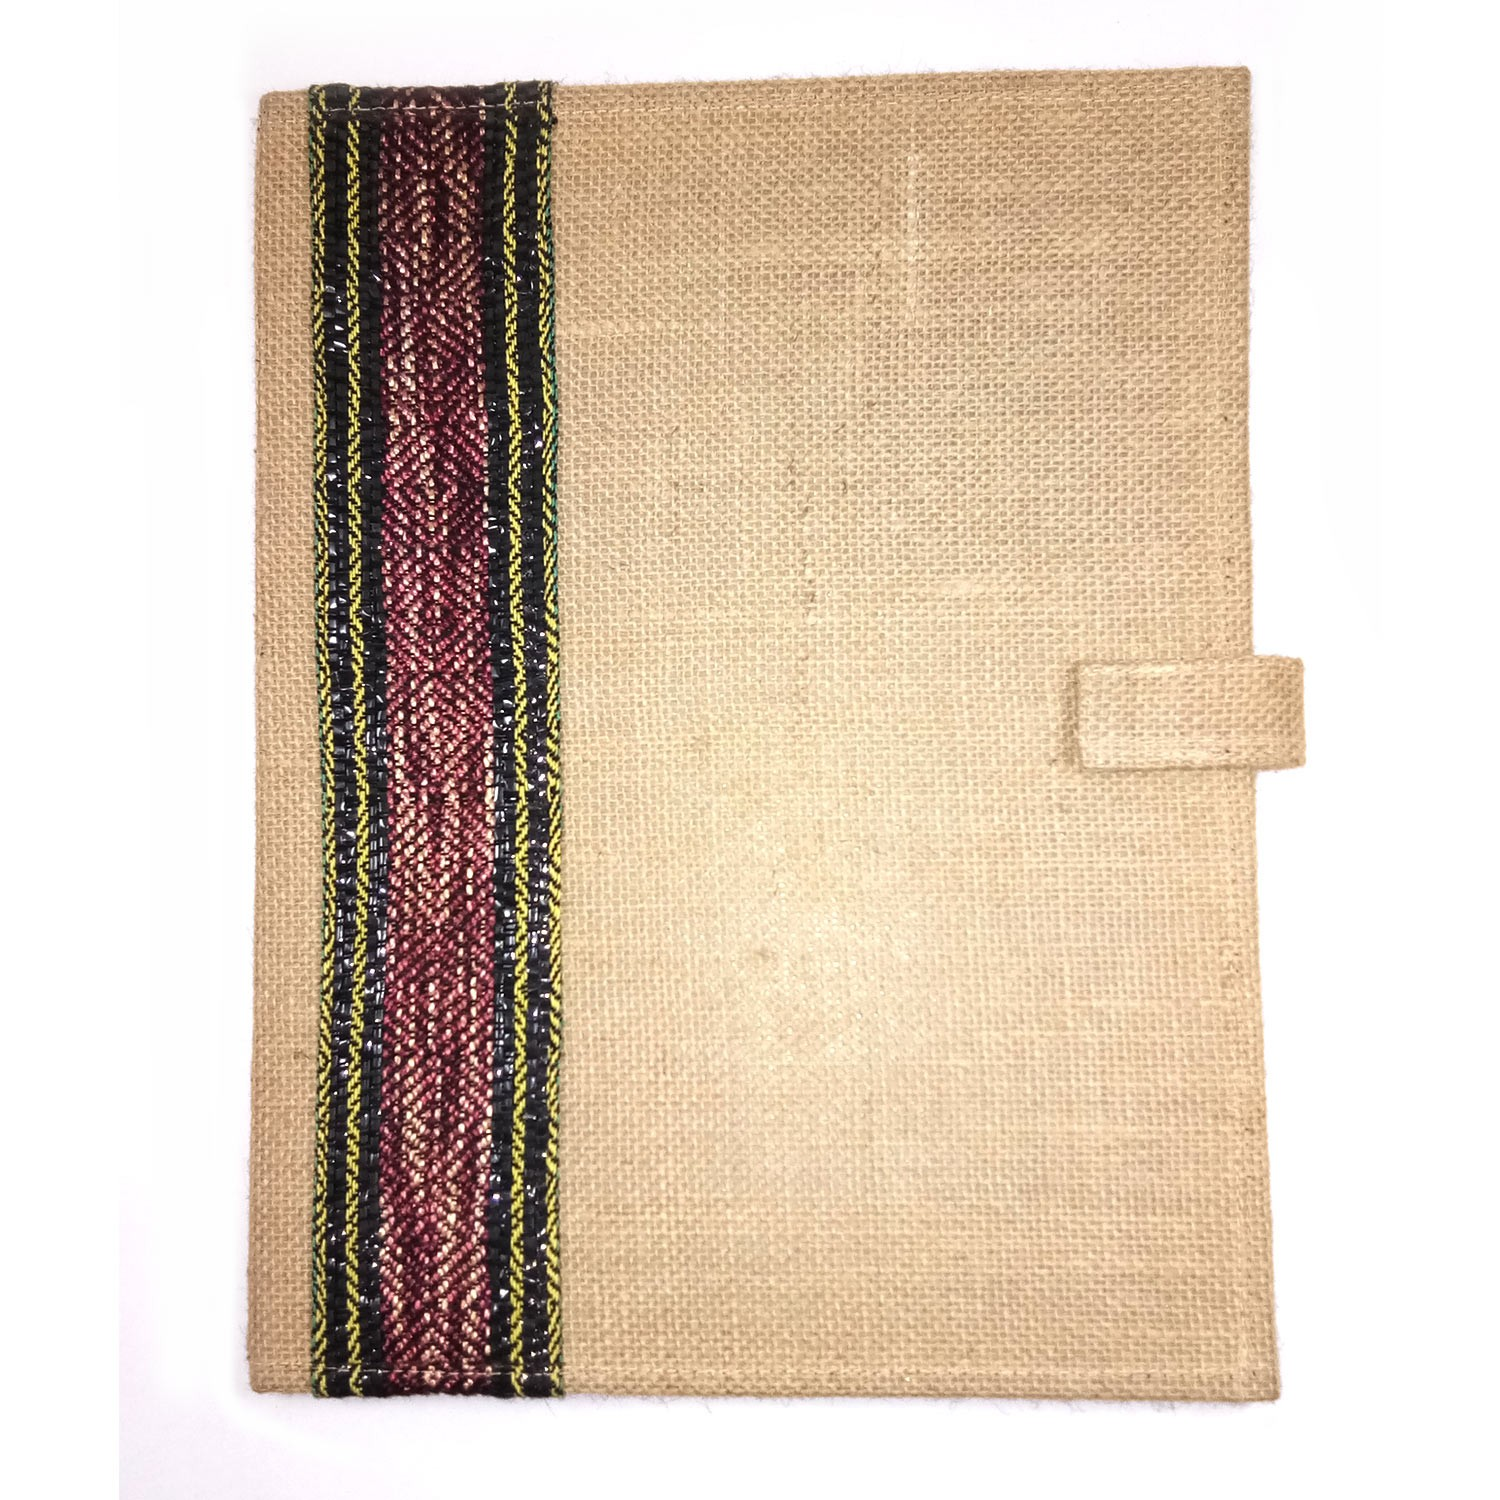 Brown Jute File Folder By People with Disability